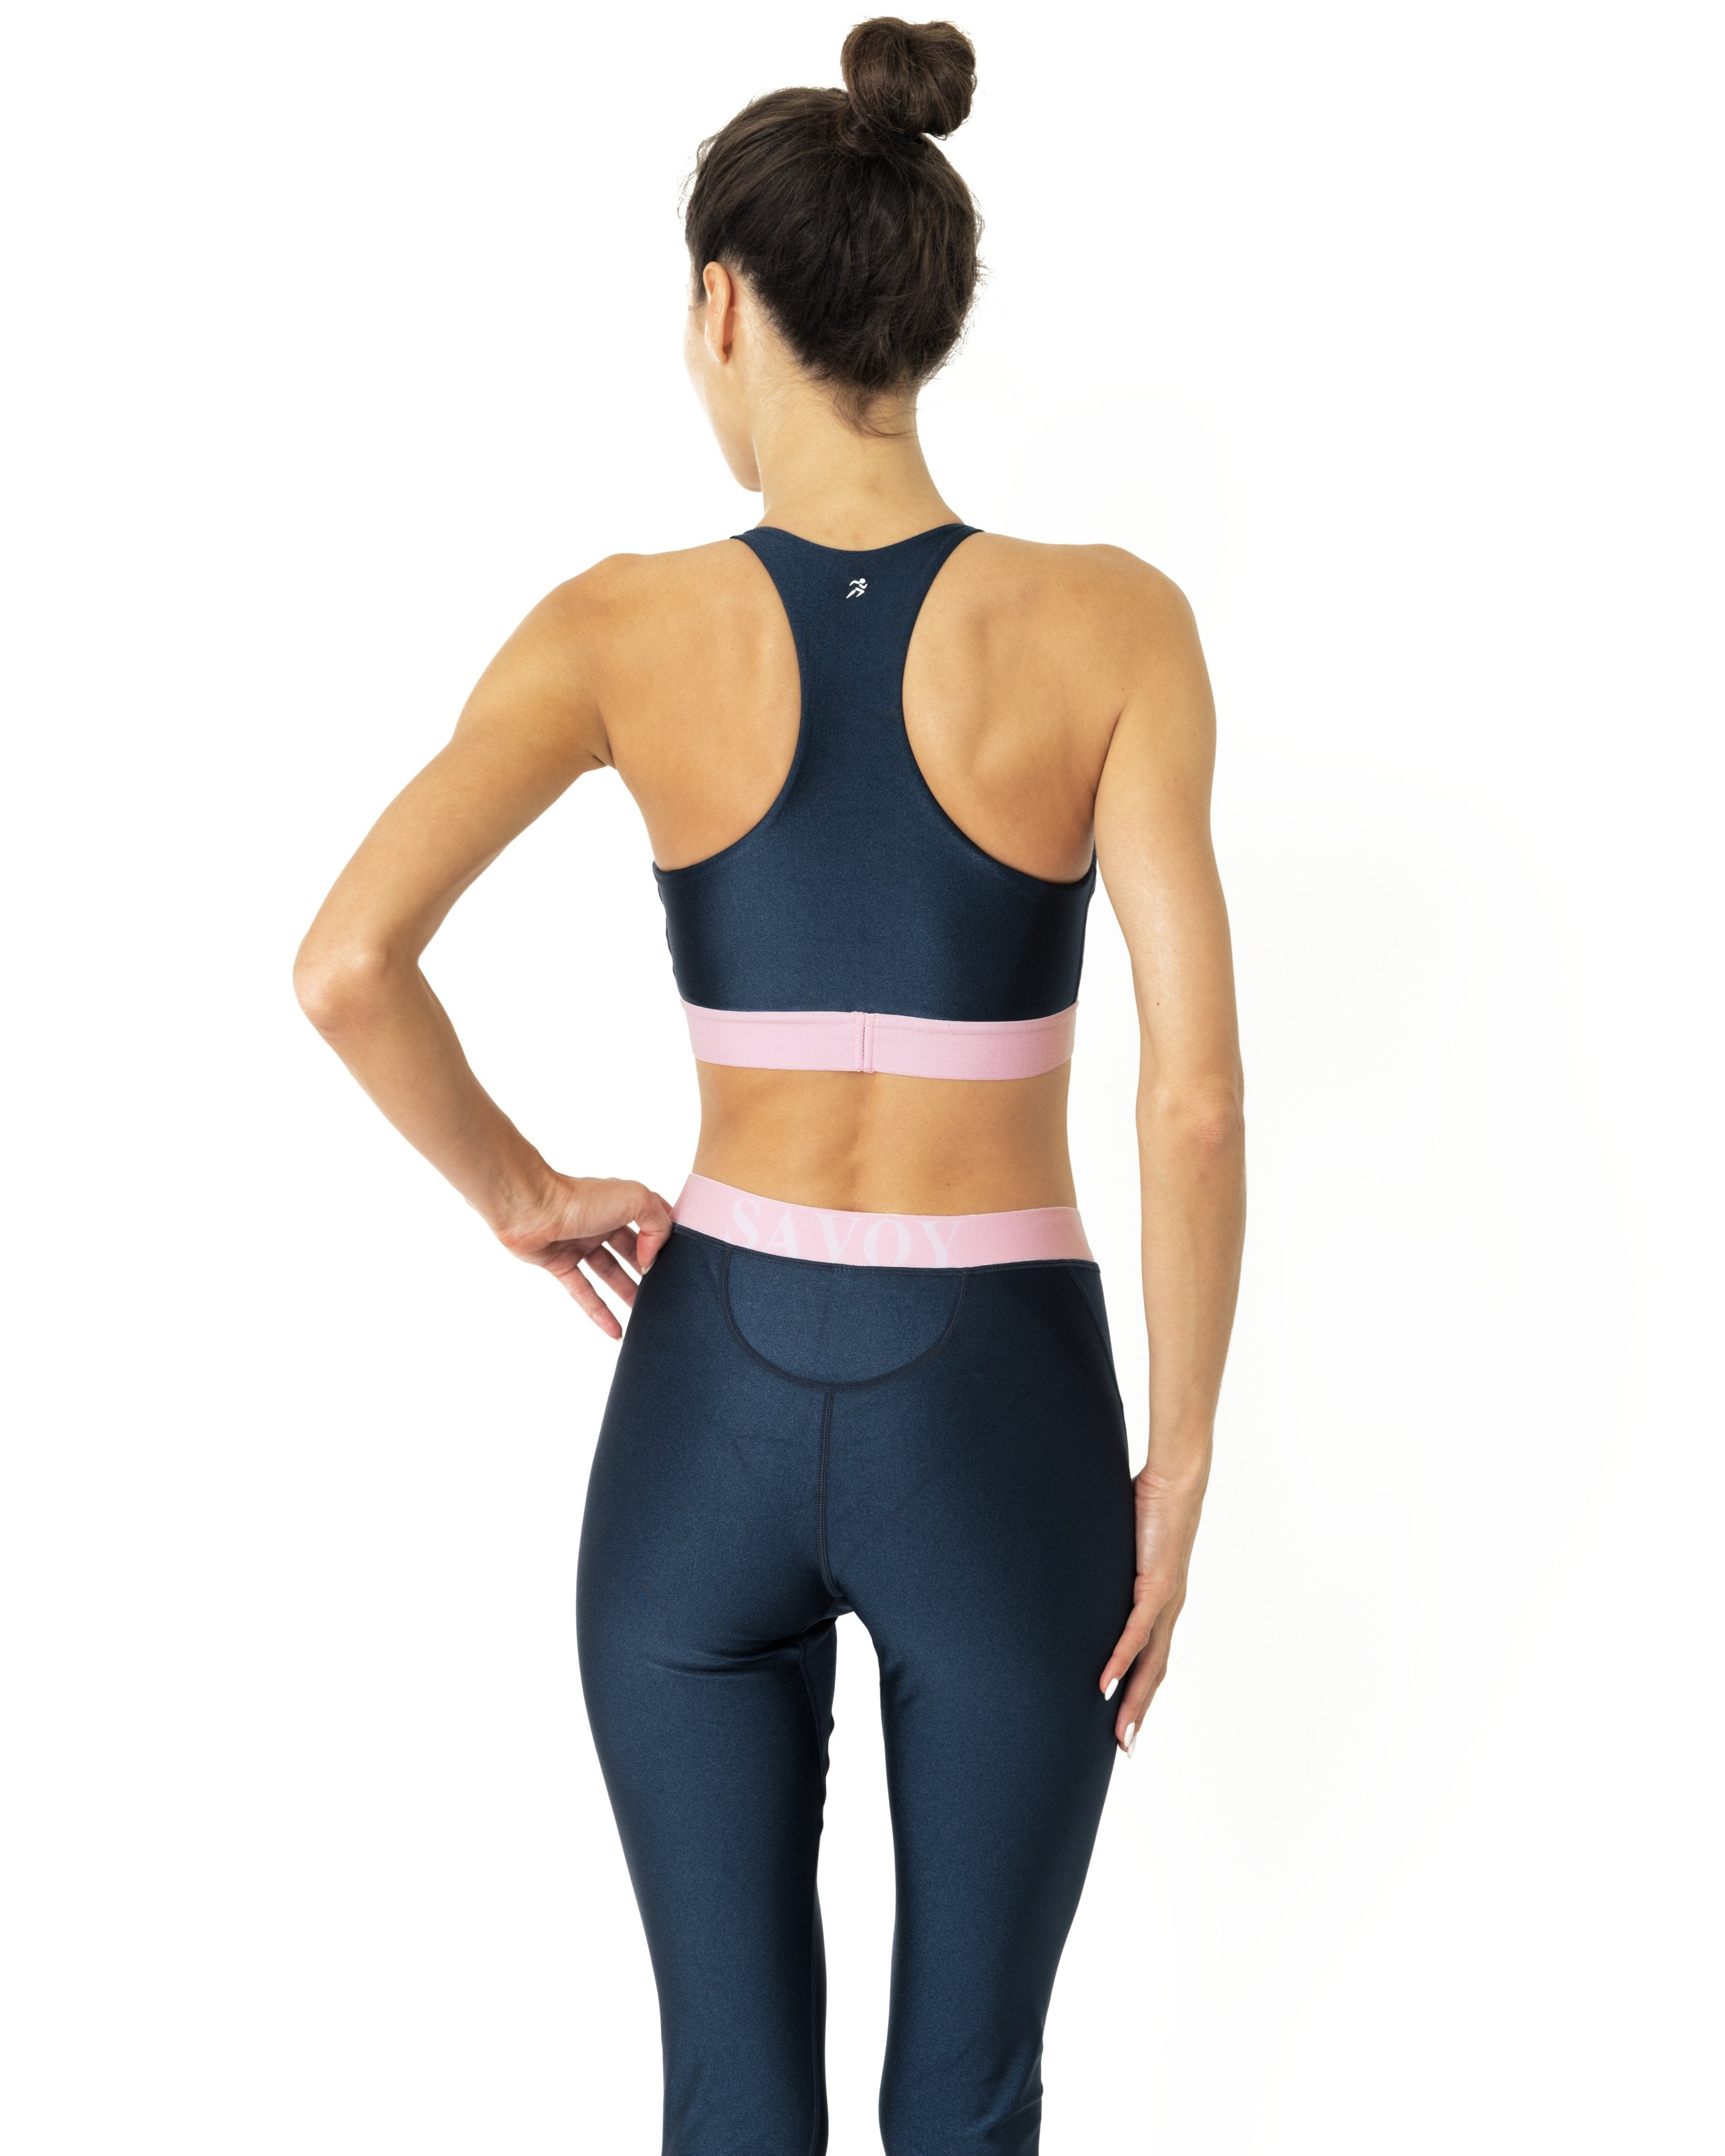 Hudson Two Piece Workout Set - Sports Crop Bra and Mid Rise Leggings - Zip & Mos